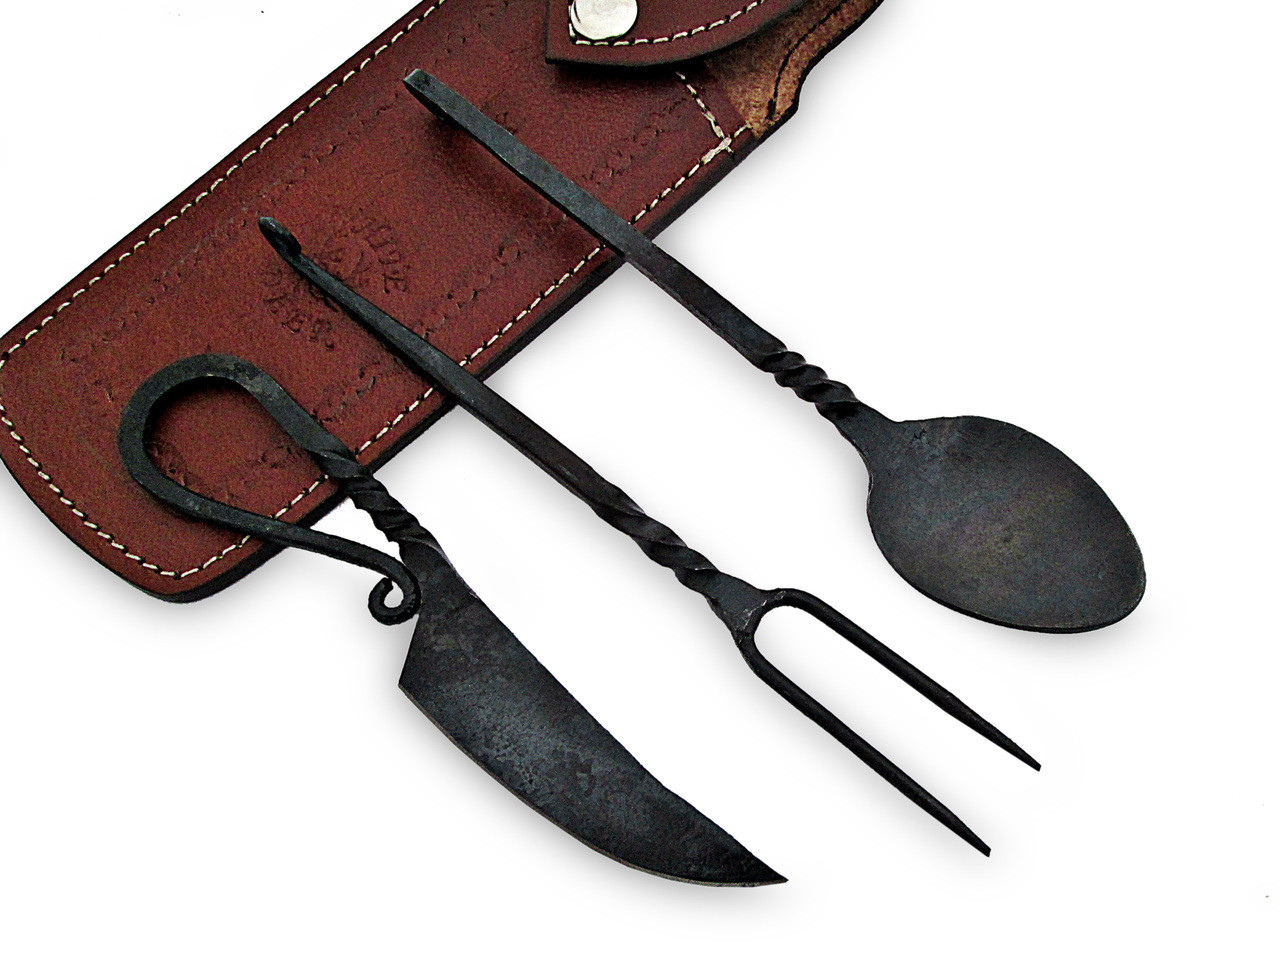 Hand Forged Medieval Eating Utensil Feasting Set Spoon, Knife & Fork